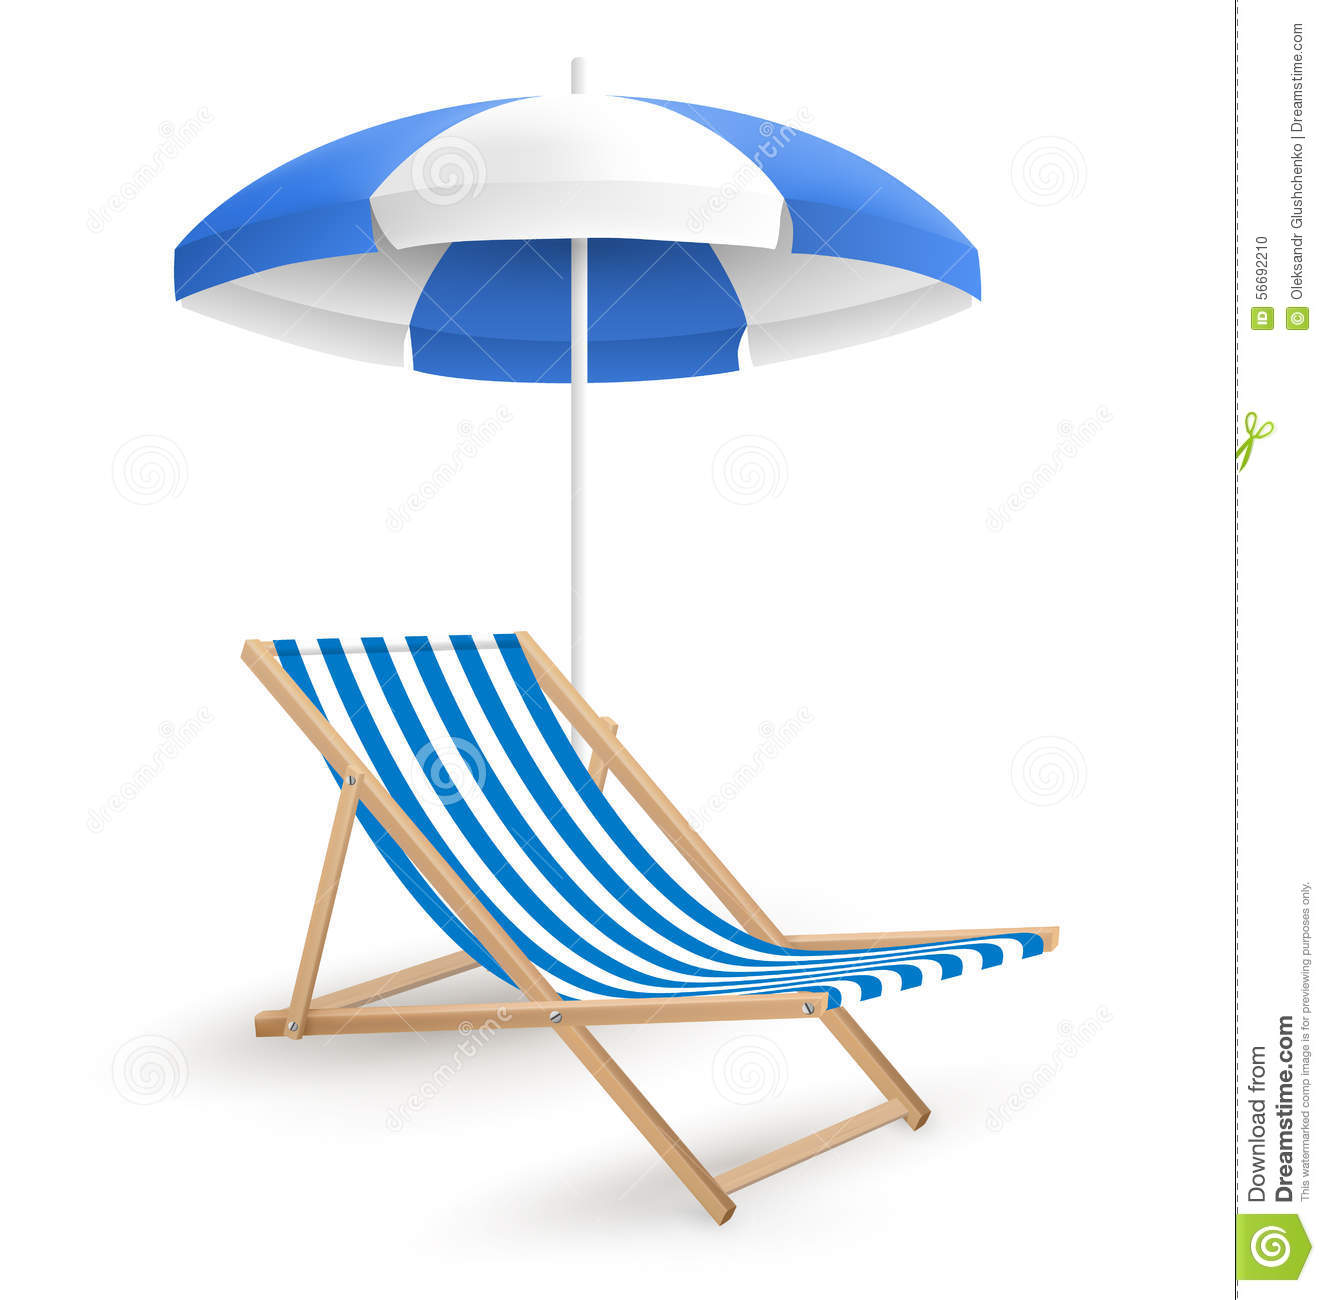 beach umbrella and chair. Simple And Sun Beach Umbrella With Chair On White Inside Beach Umbrella And Chair